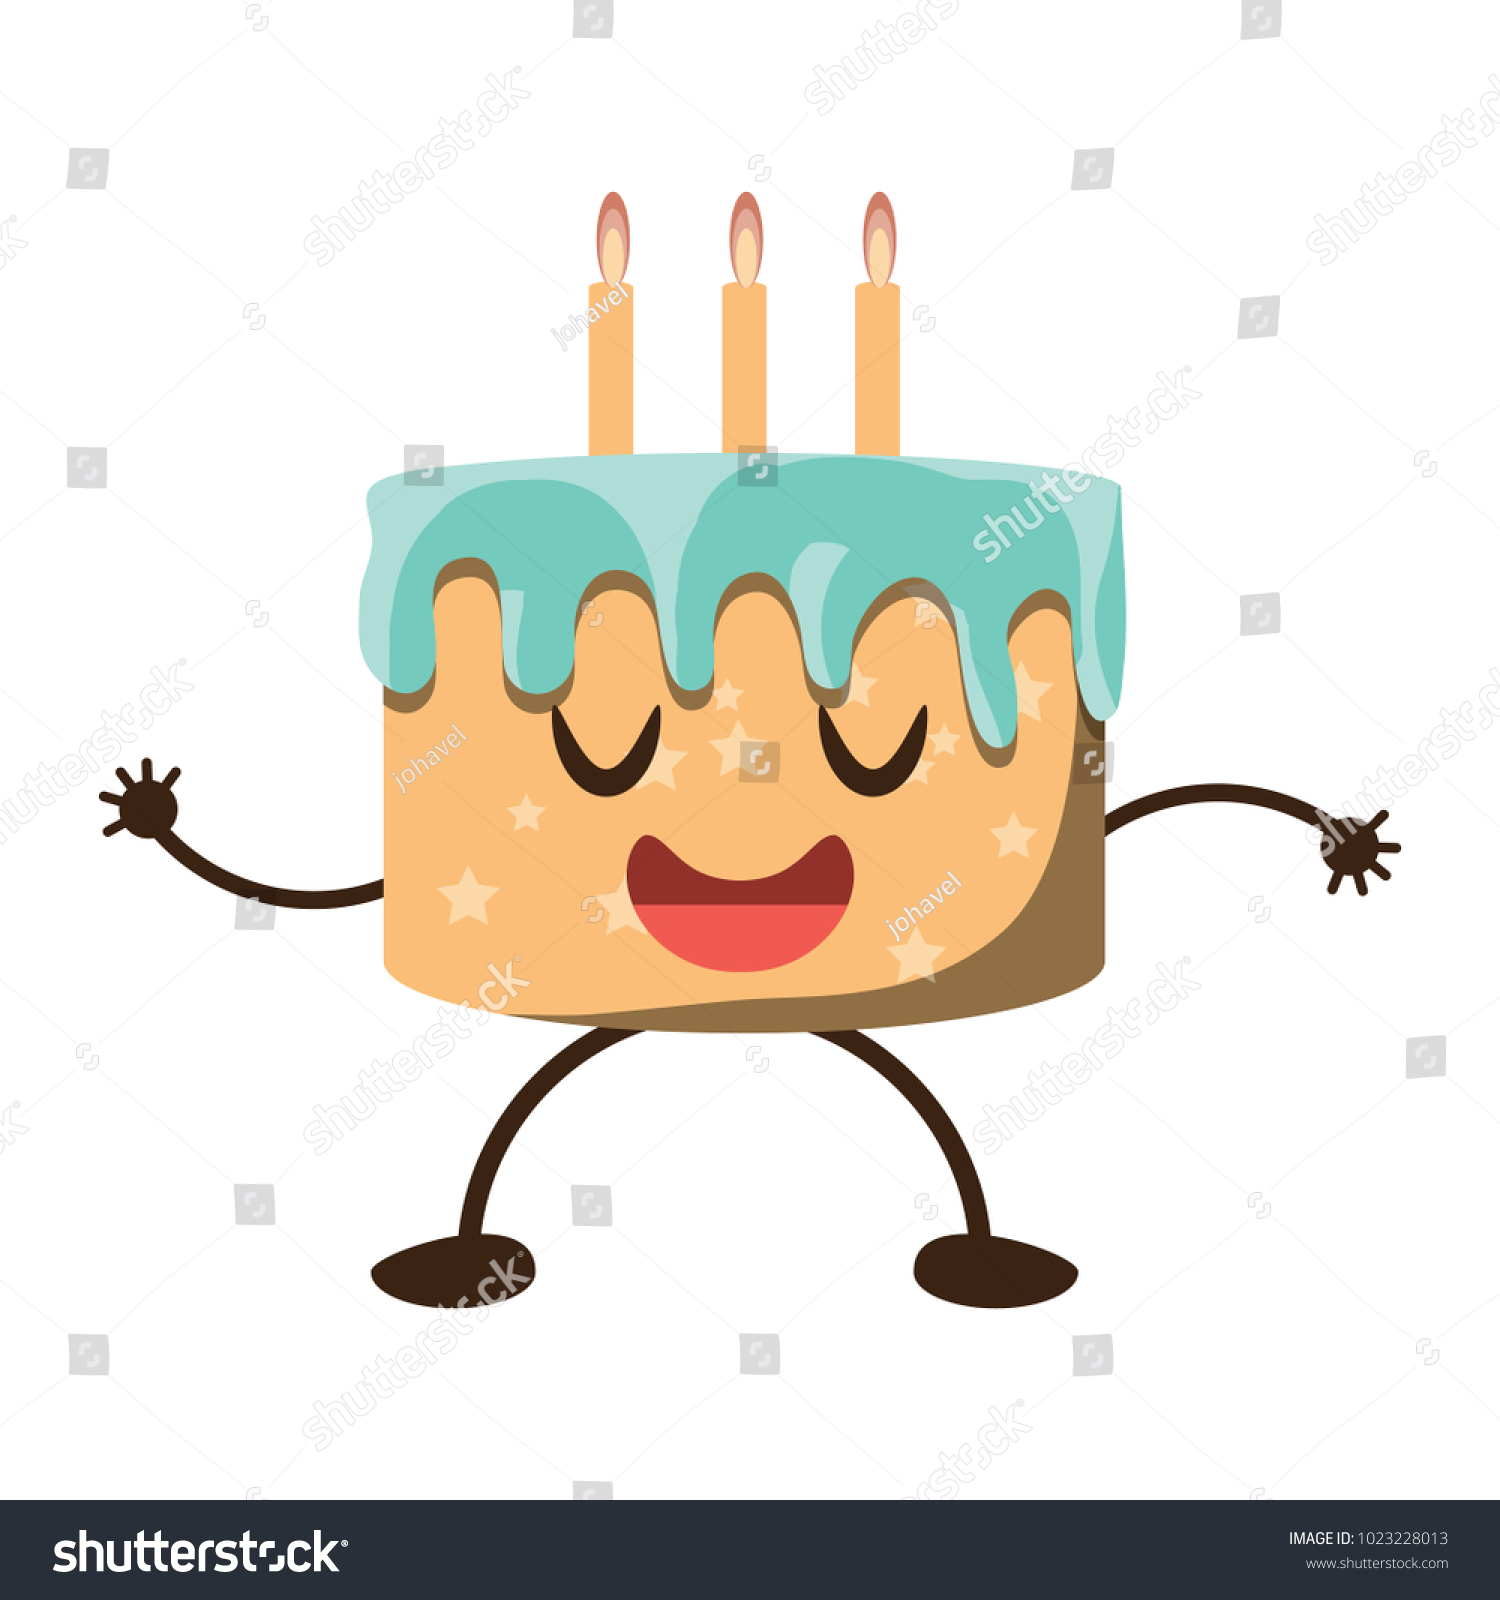 Kawaii Birthday Cake Icon Stock Vector 1023228013 Shutterstock